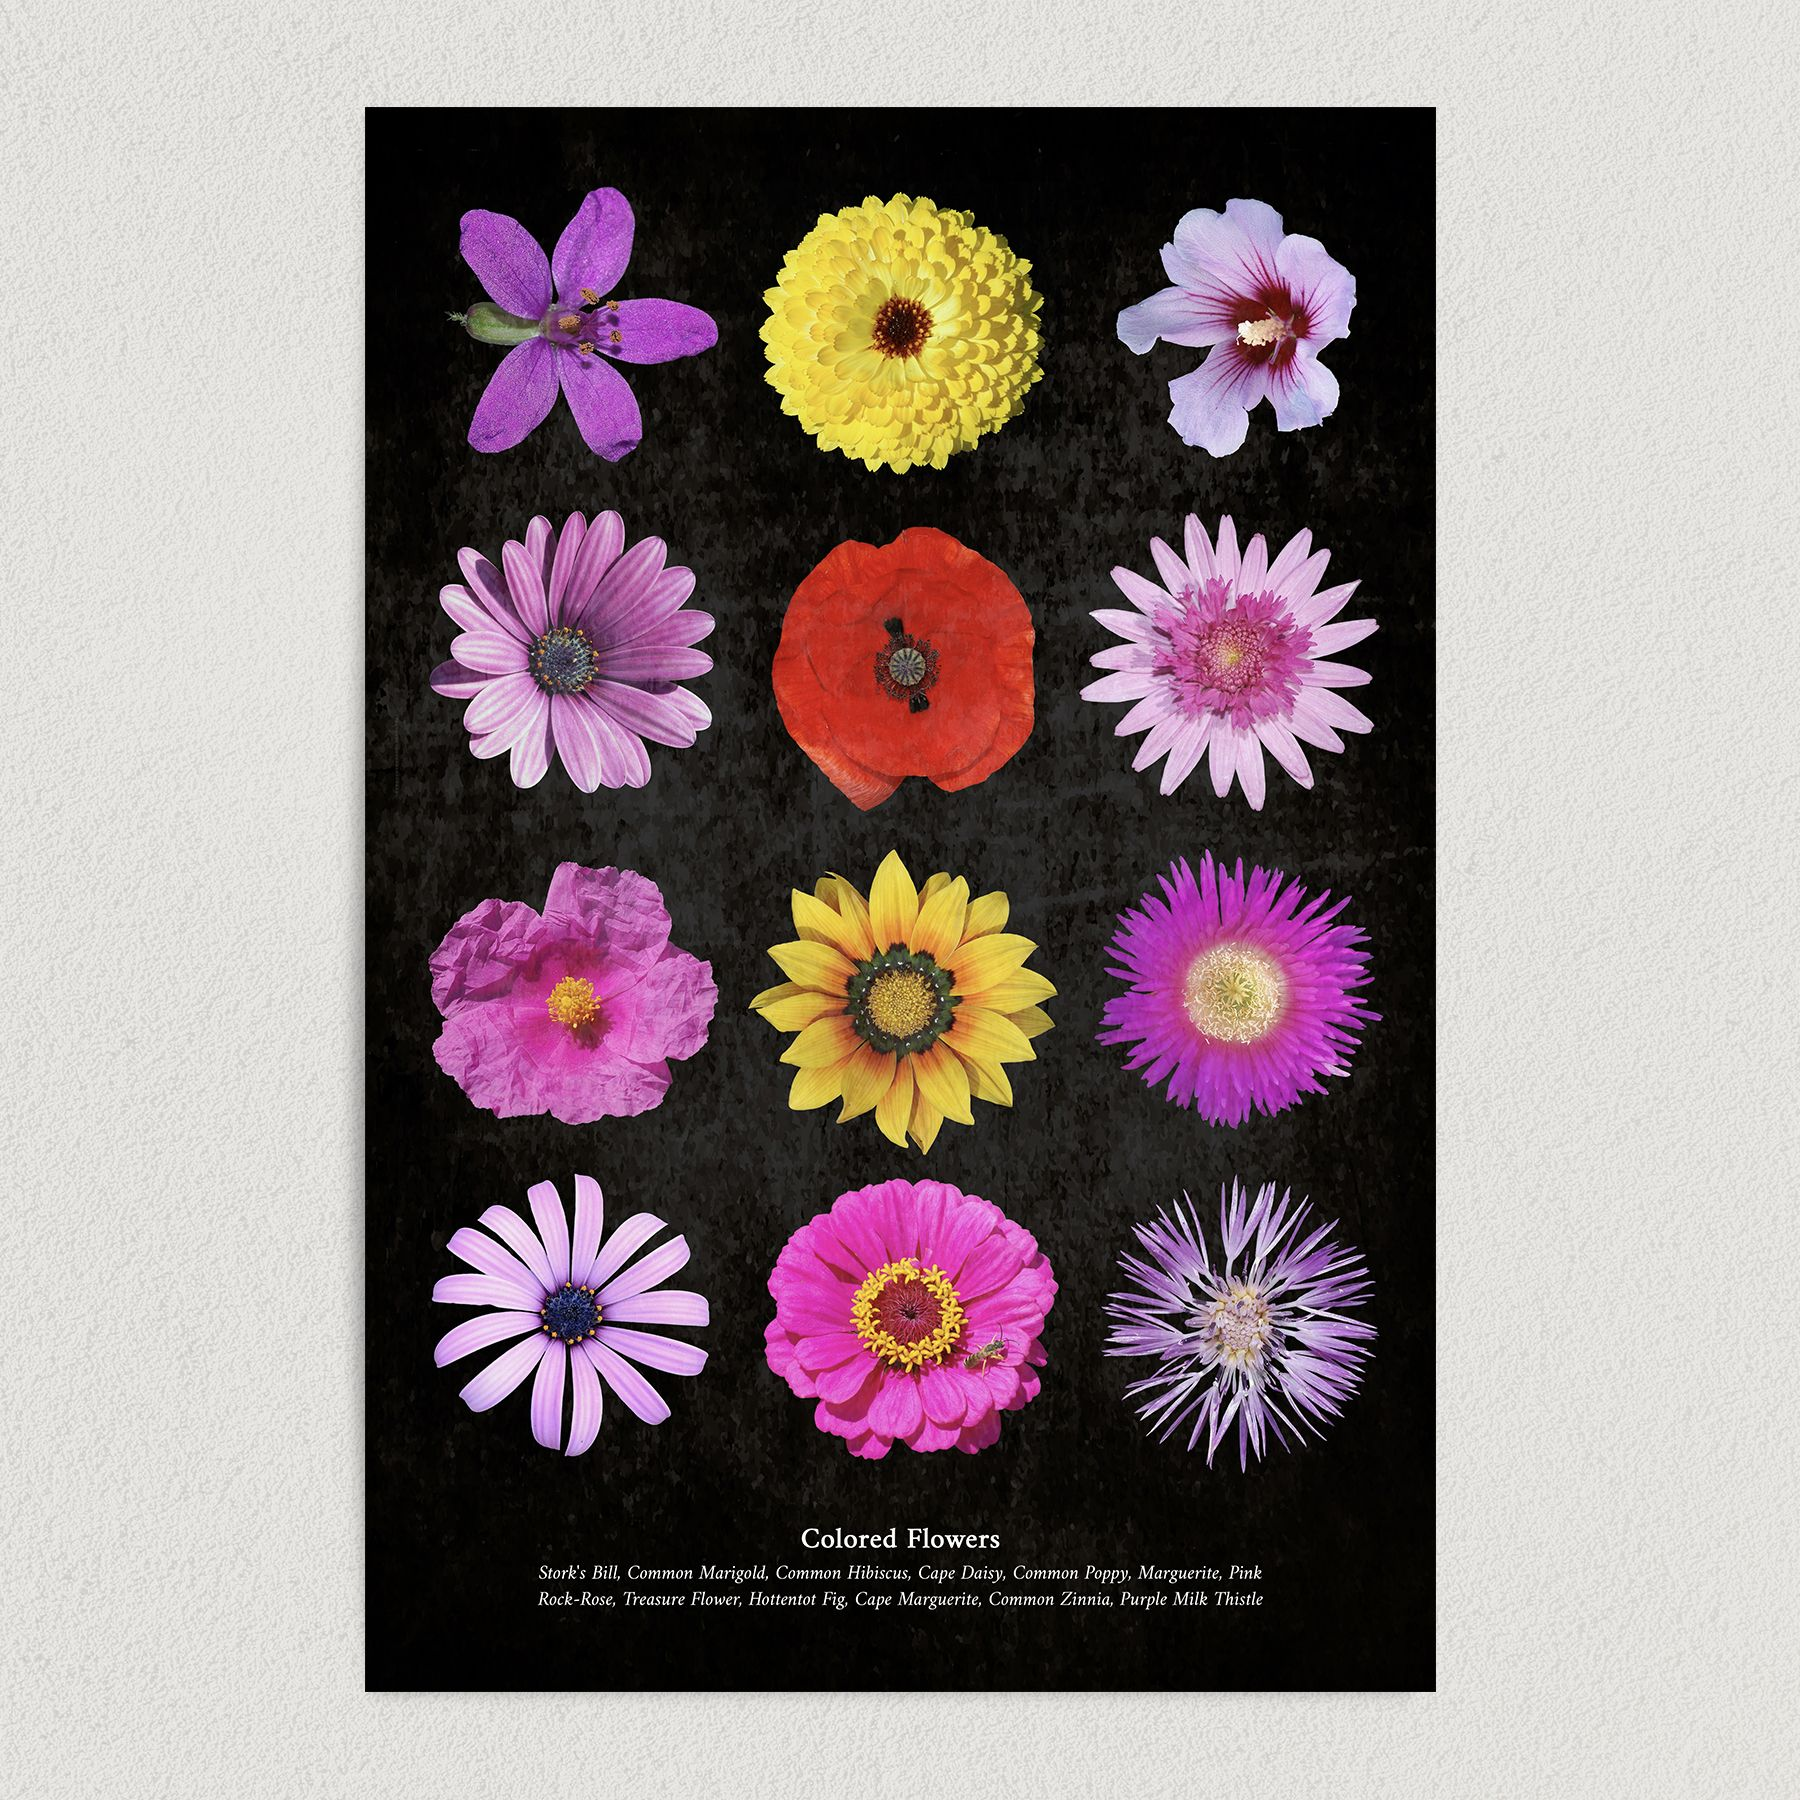 Colored Flowers Art Print Poster 12″ x 18″ Wall Art GC3002